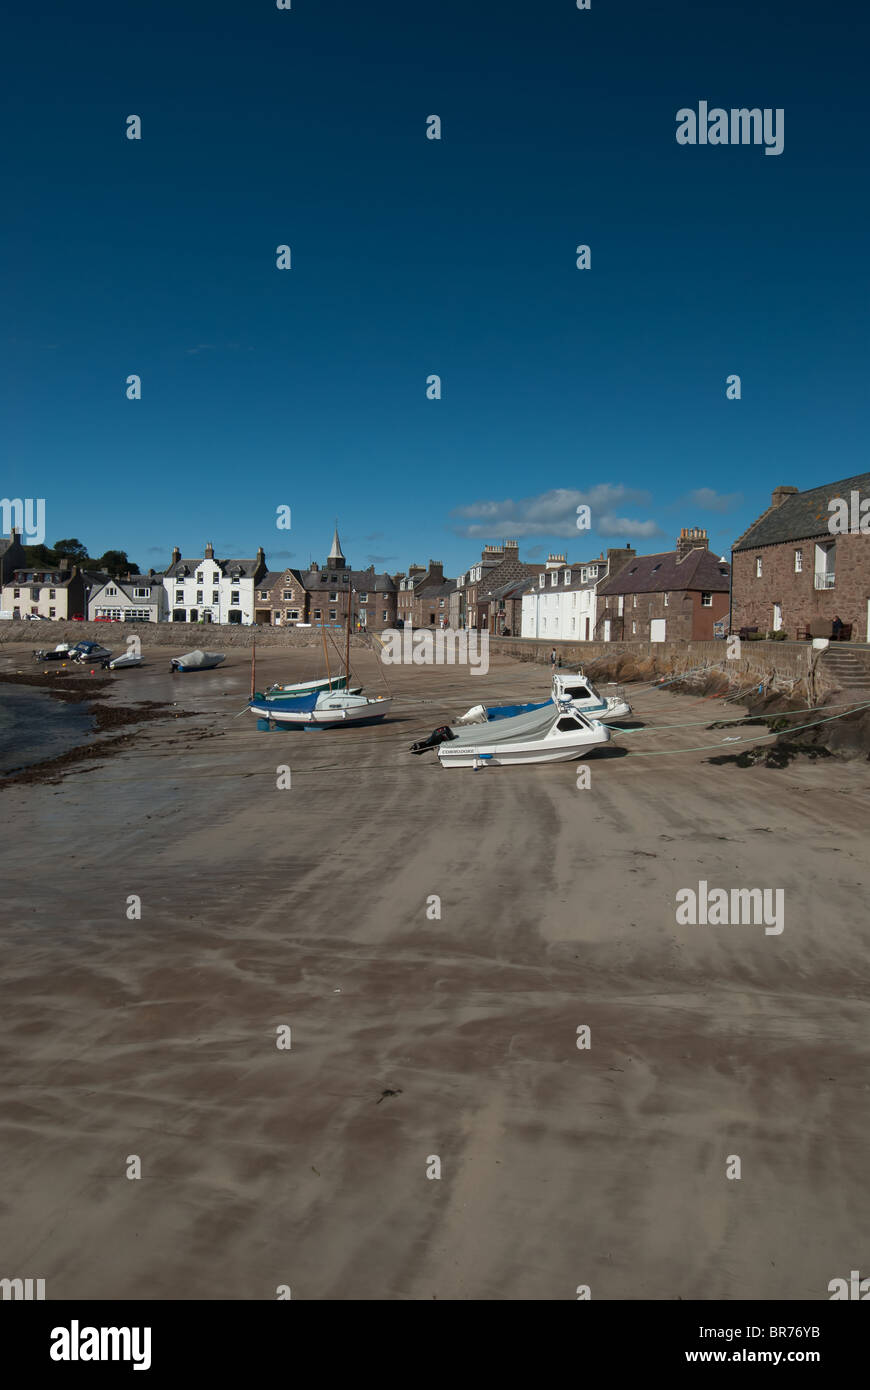 Beach at Stonehaven Harbour Aberdeenshire Scotland UK - Stock Image